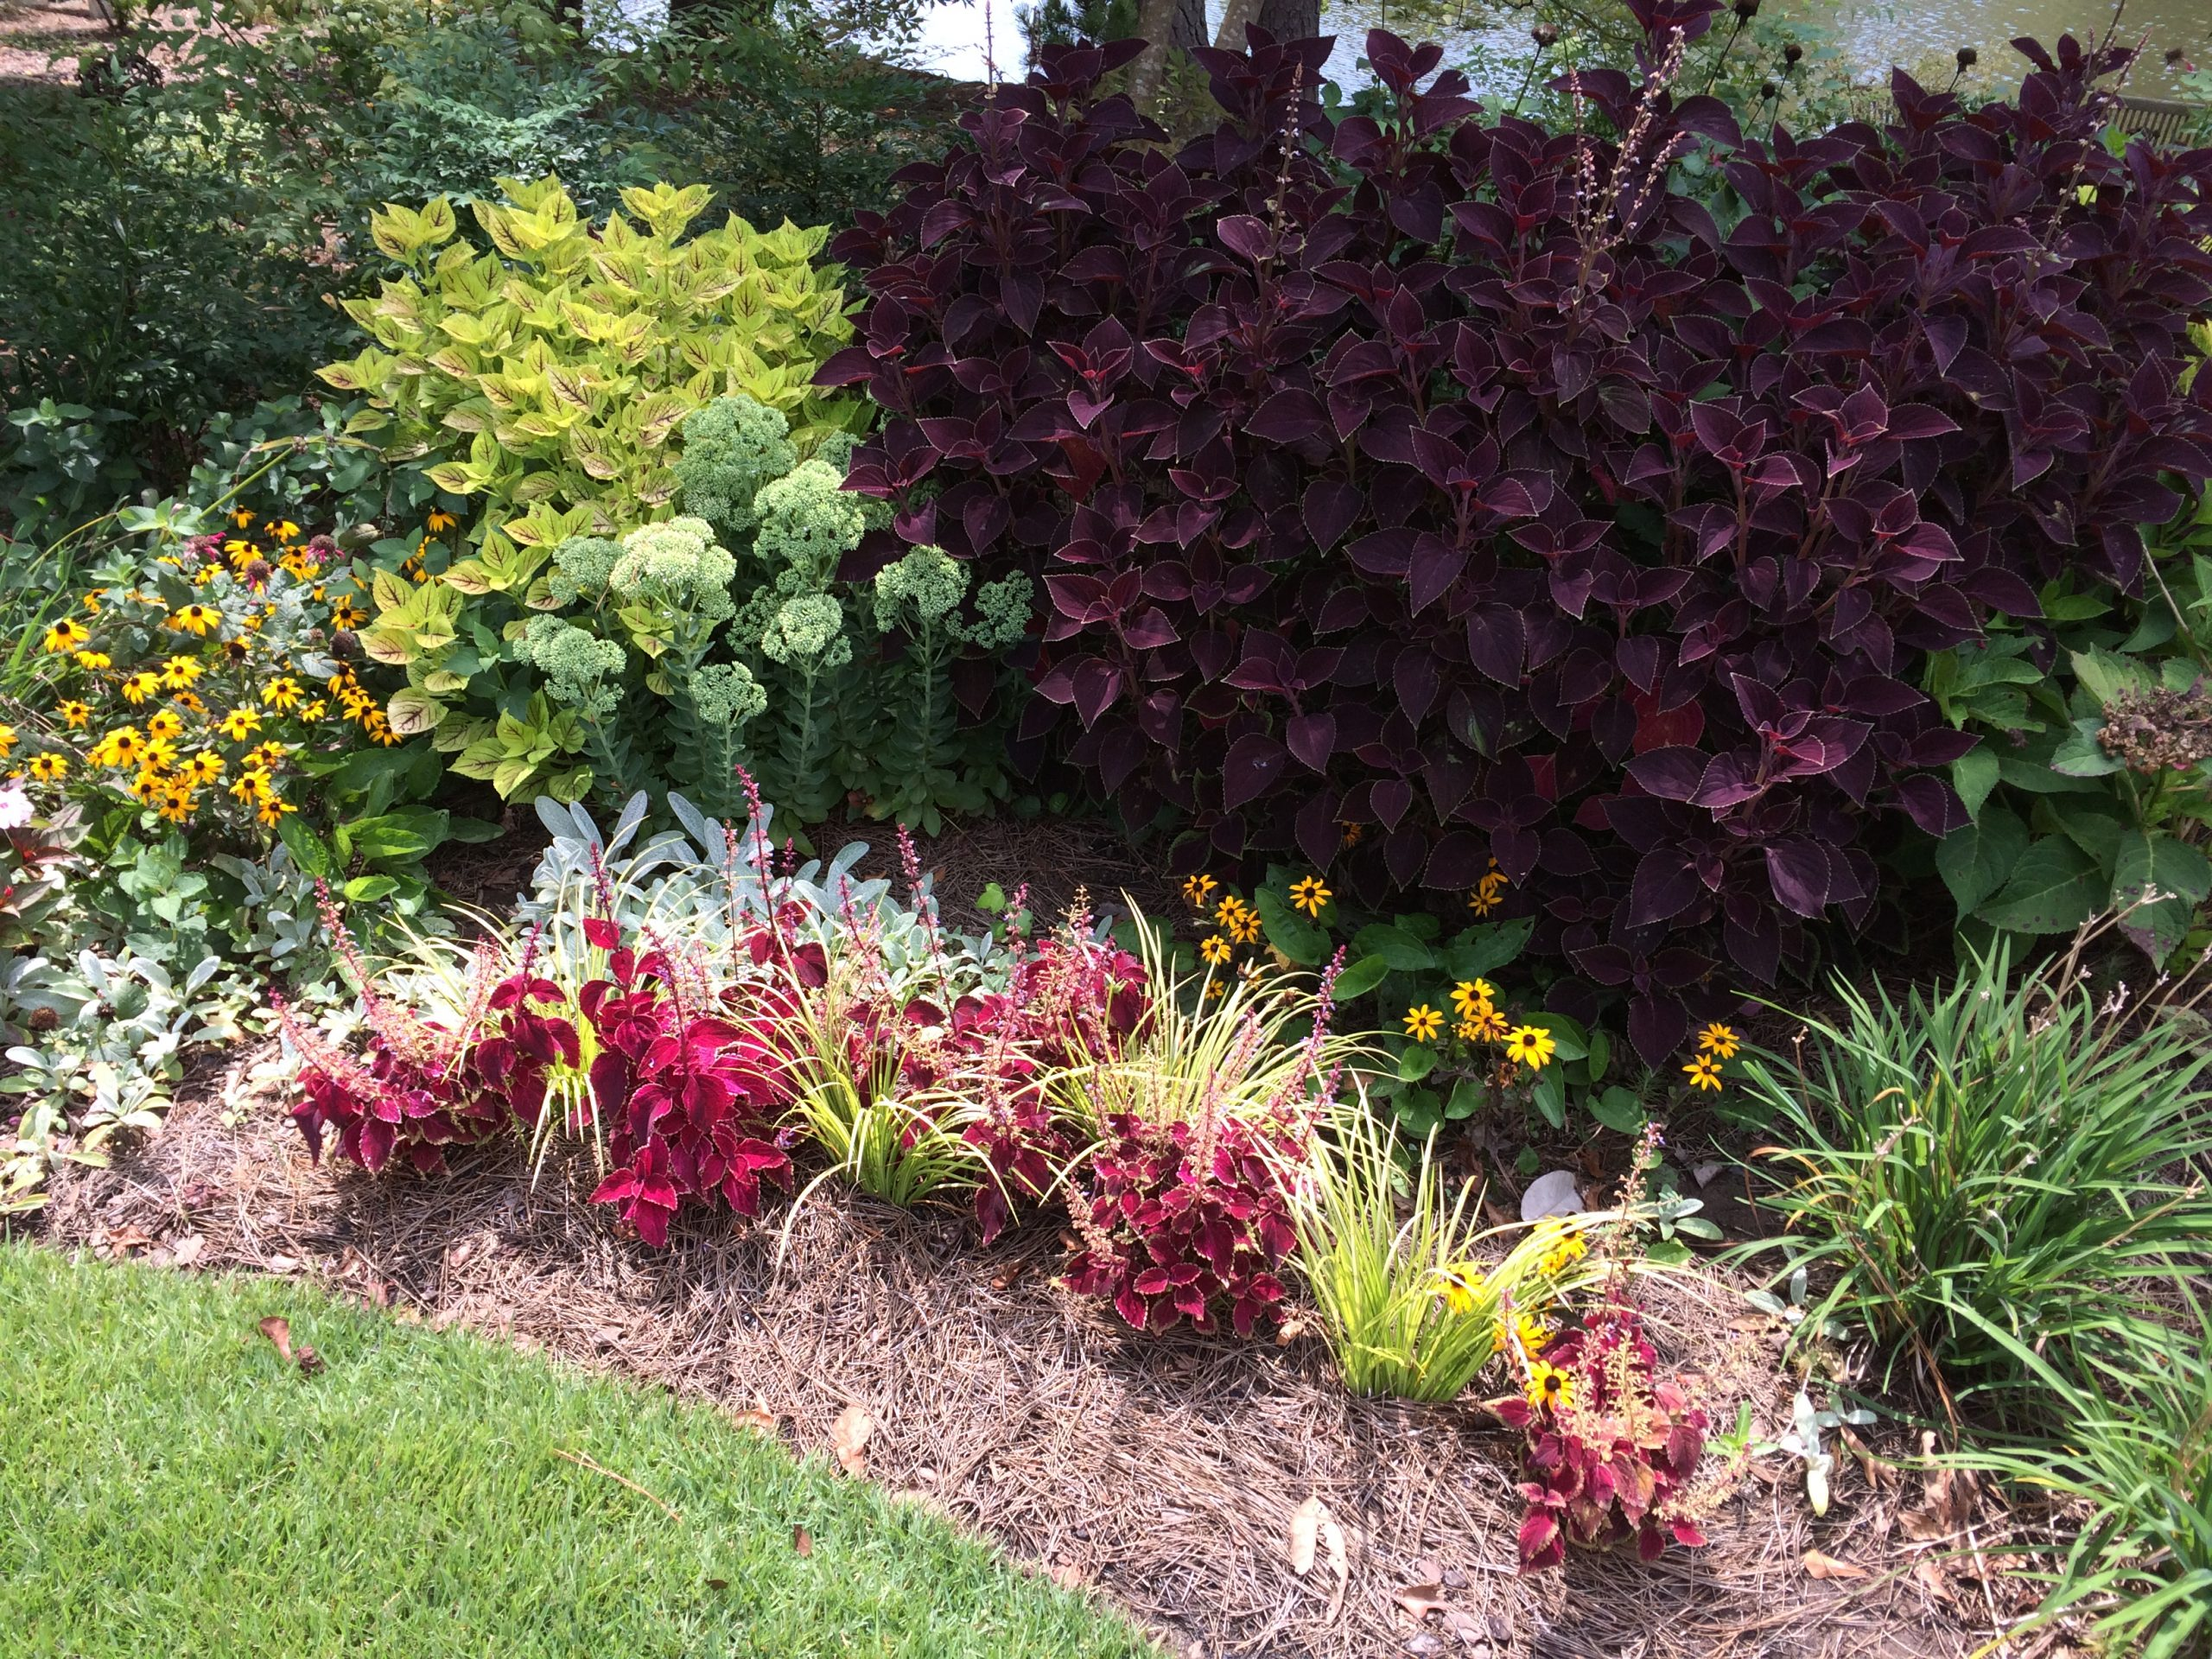 Custom Designed Landscaping With Red And Green Plants, Flowers, And Shrubbery